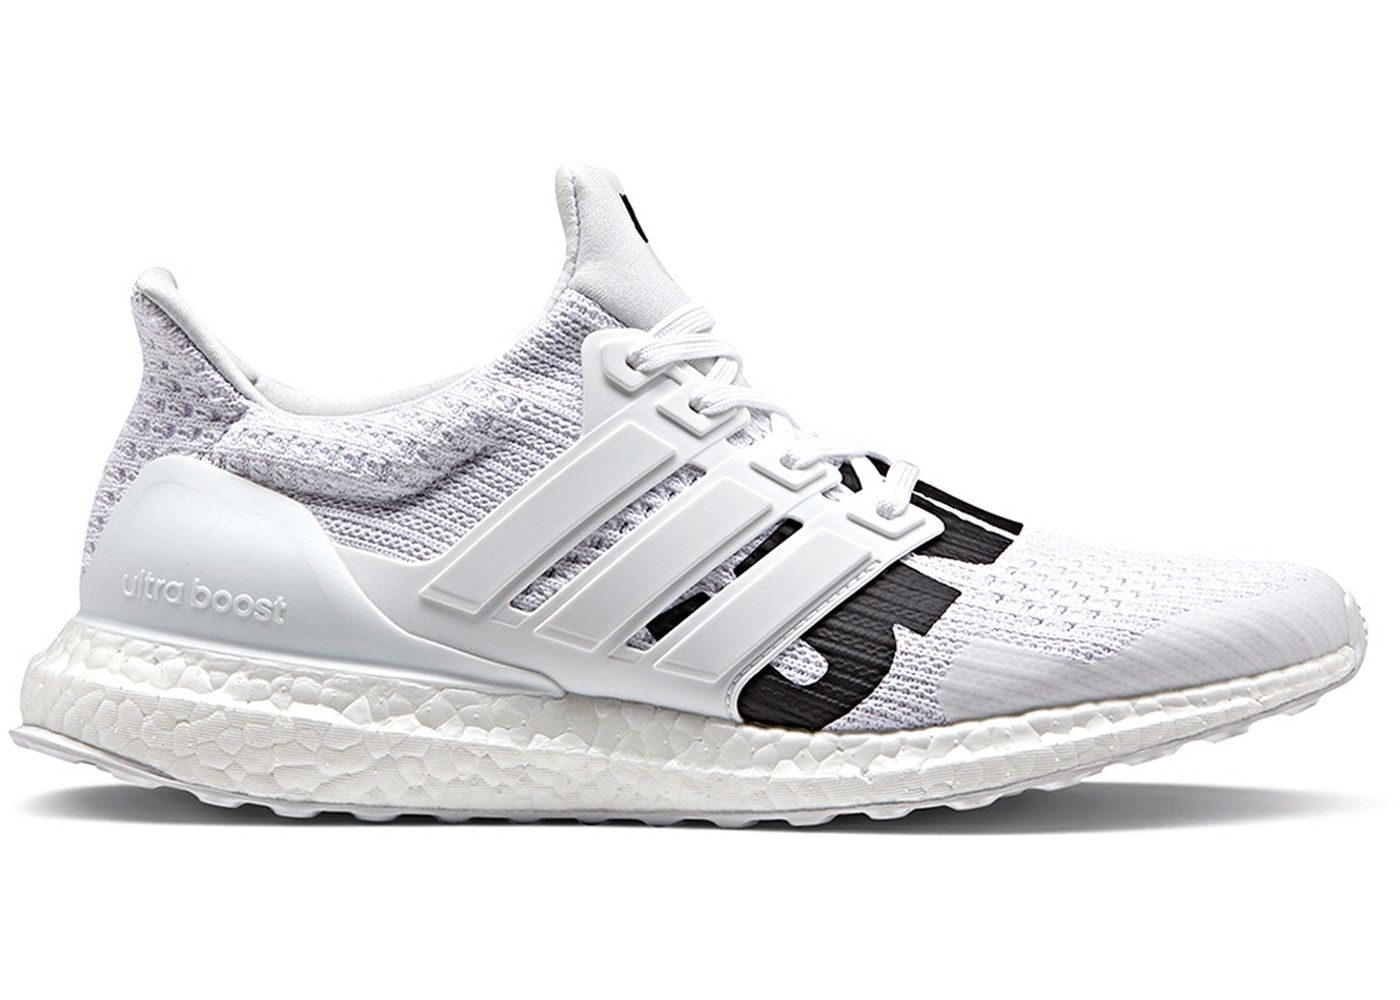 0688513c Check out the adidas Ultra Boost 1.0 UNDFTD White available on StockX